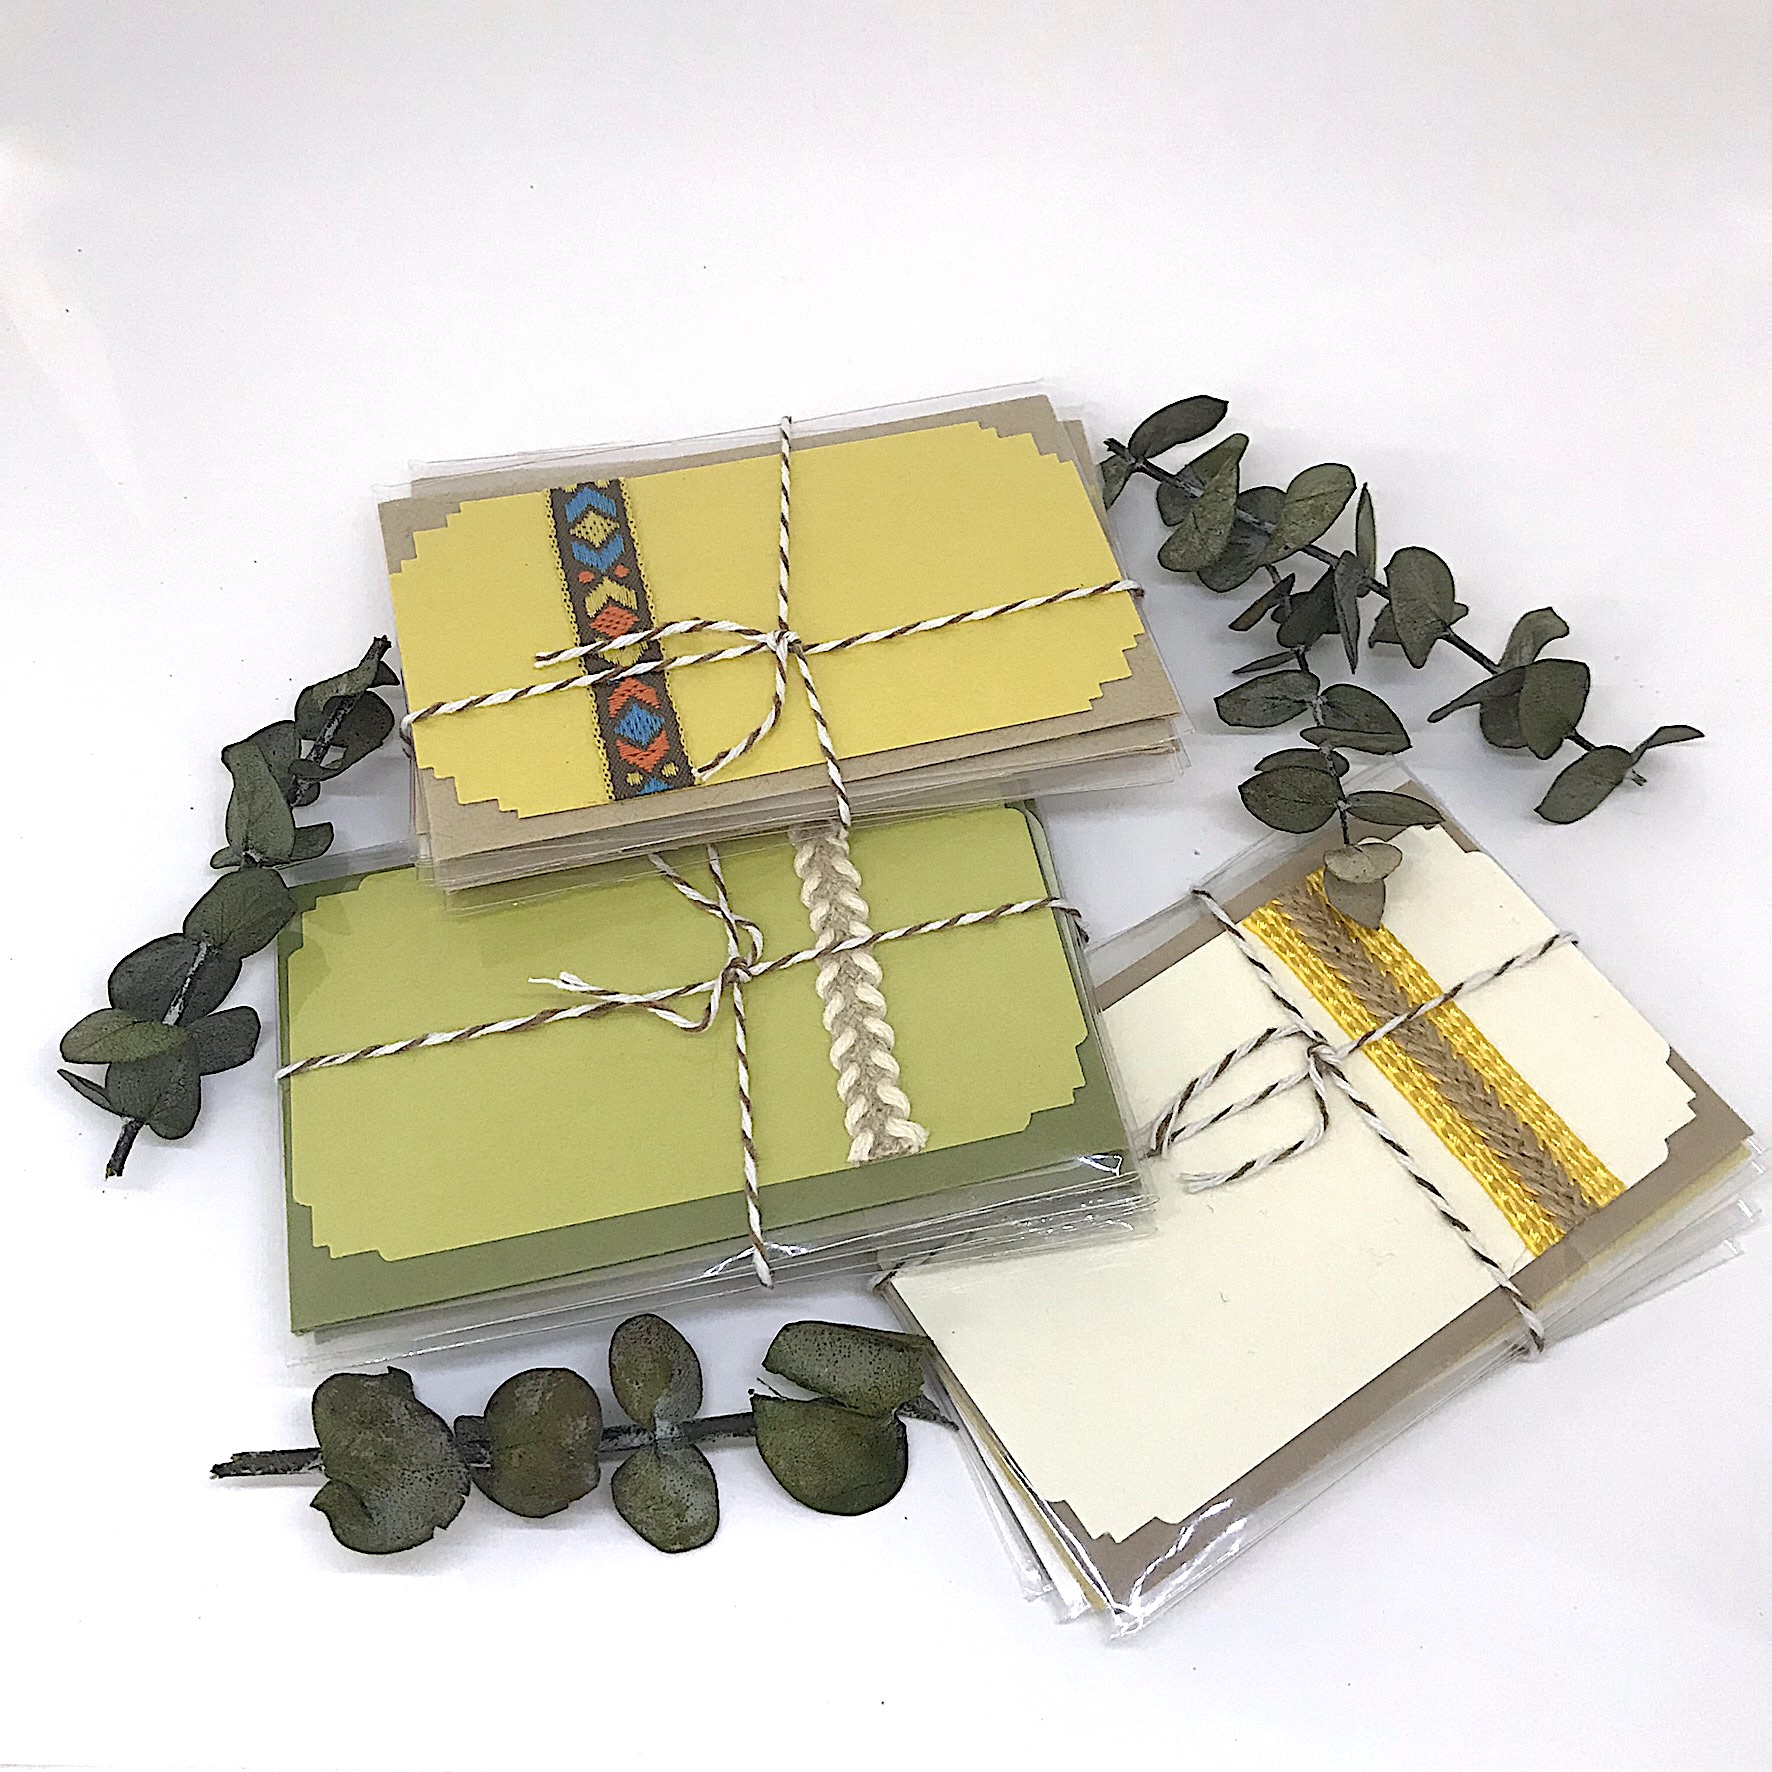 Gifts for your Son - Remind your Son that you taught him to write thank you notes. Give him these handmade stationary cards made by Sugar Paperie